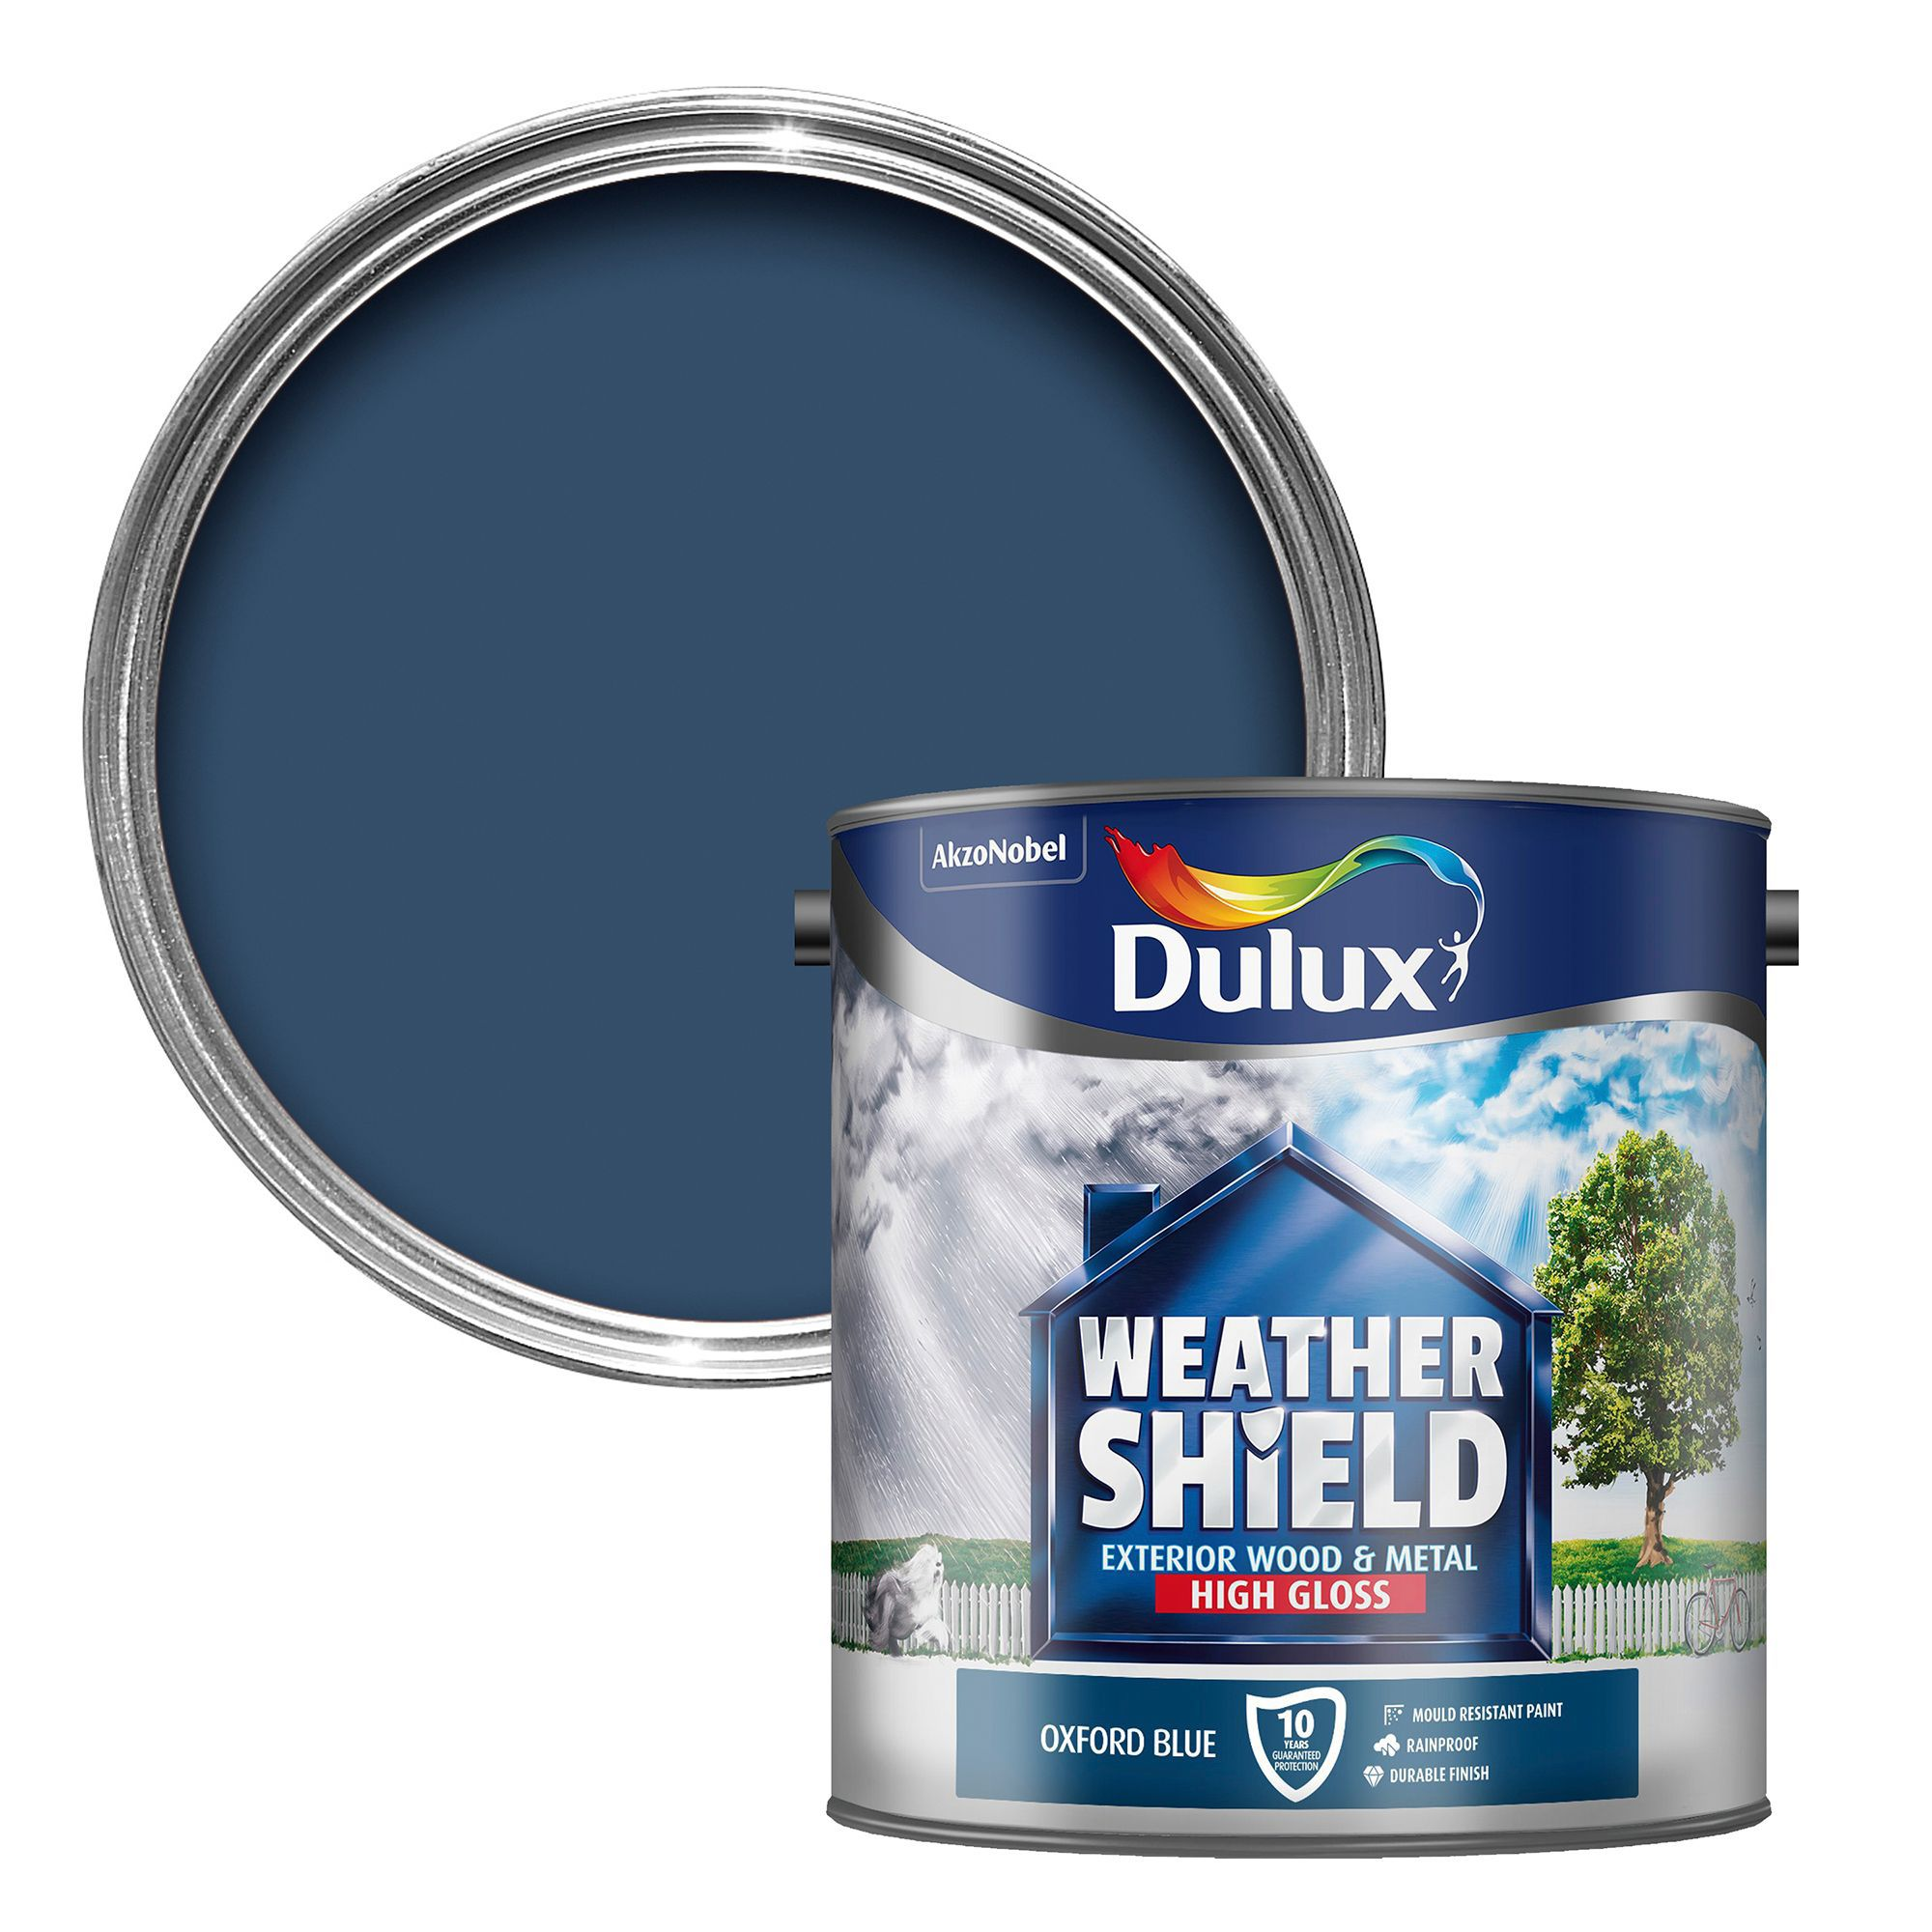 Dulux weathershield exterior oxford blue gloss wood metal paint 2 5l departments diy at b q - Dulux exterior gloss paint style ...